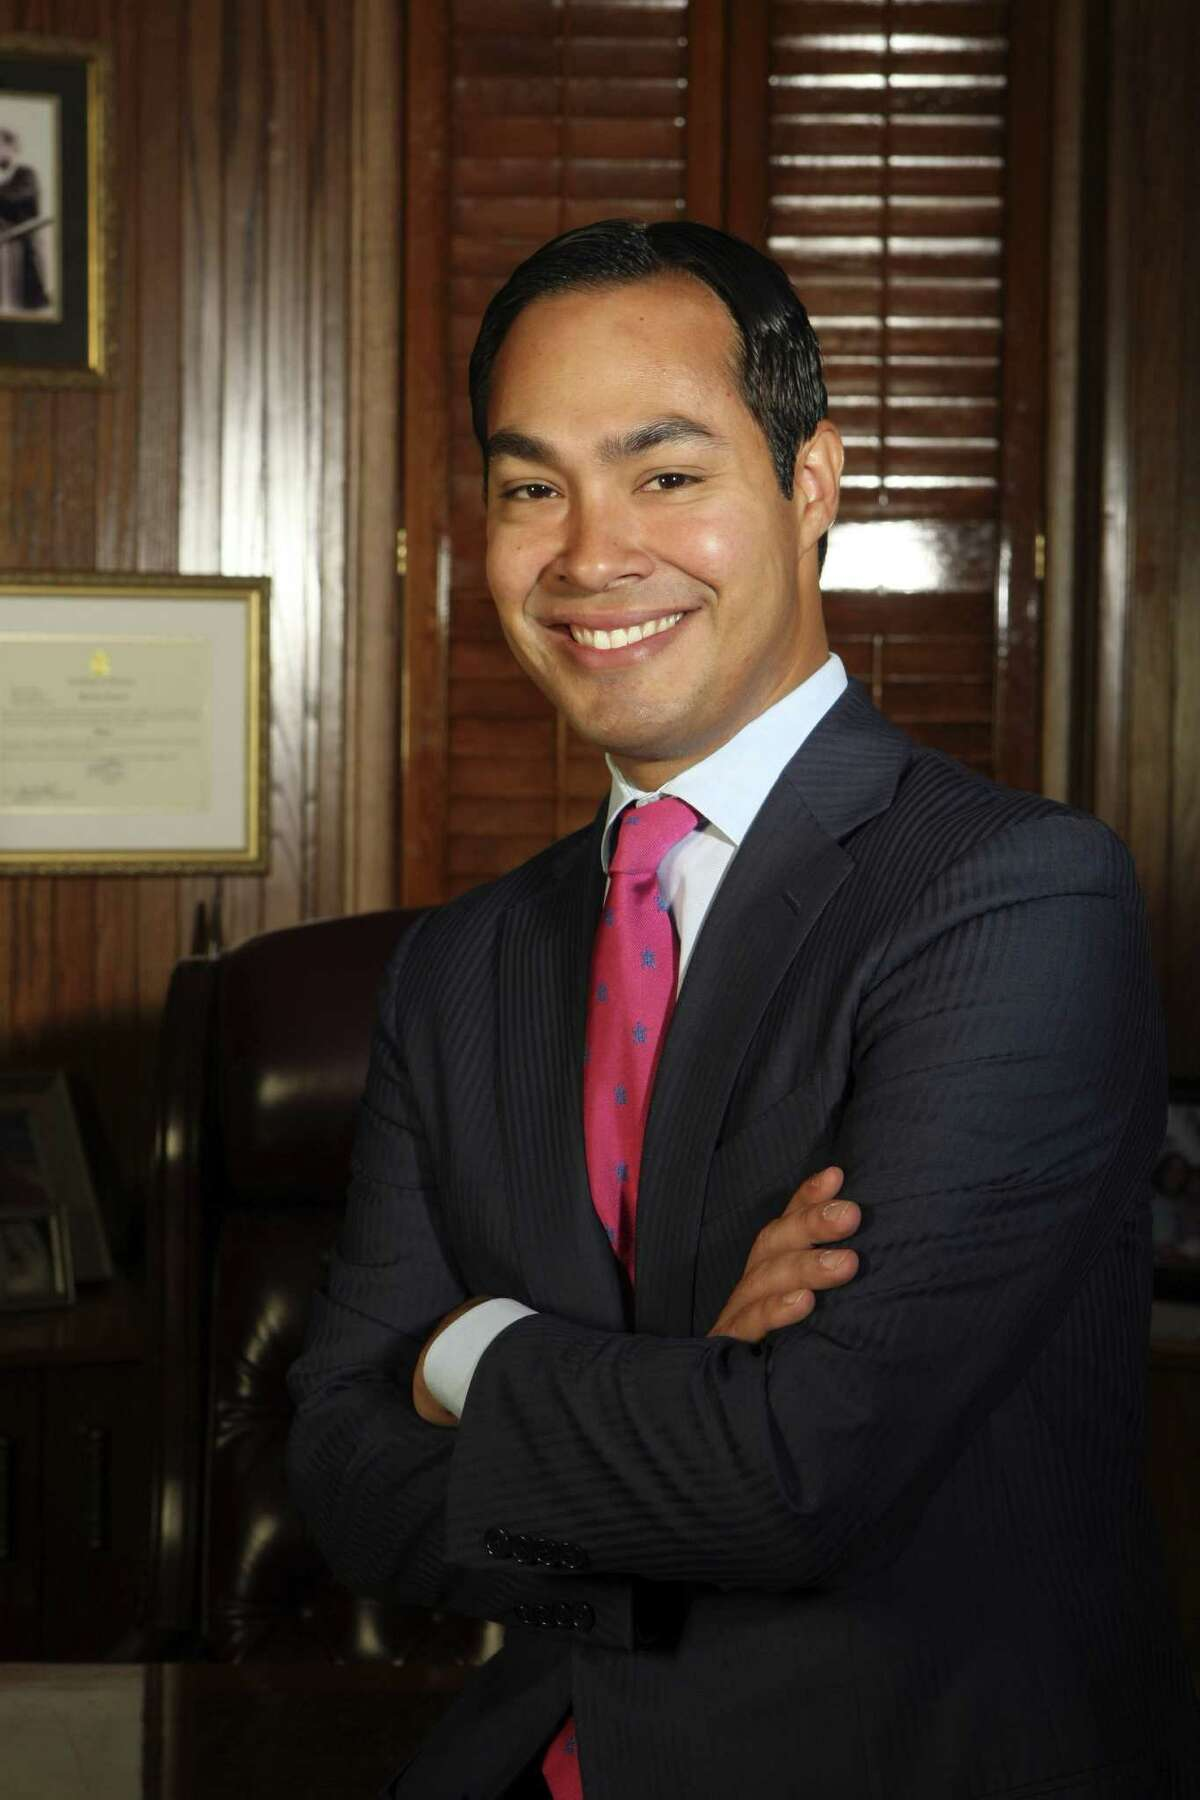 San Antonio Mayor Julian Castro is confident that the San Antonio Spurs will be able to avenge their loss in the finals last year and claim their fifth NBA title in franchise history